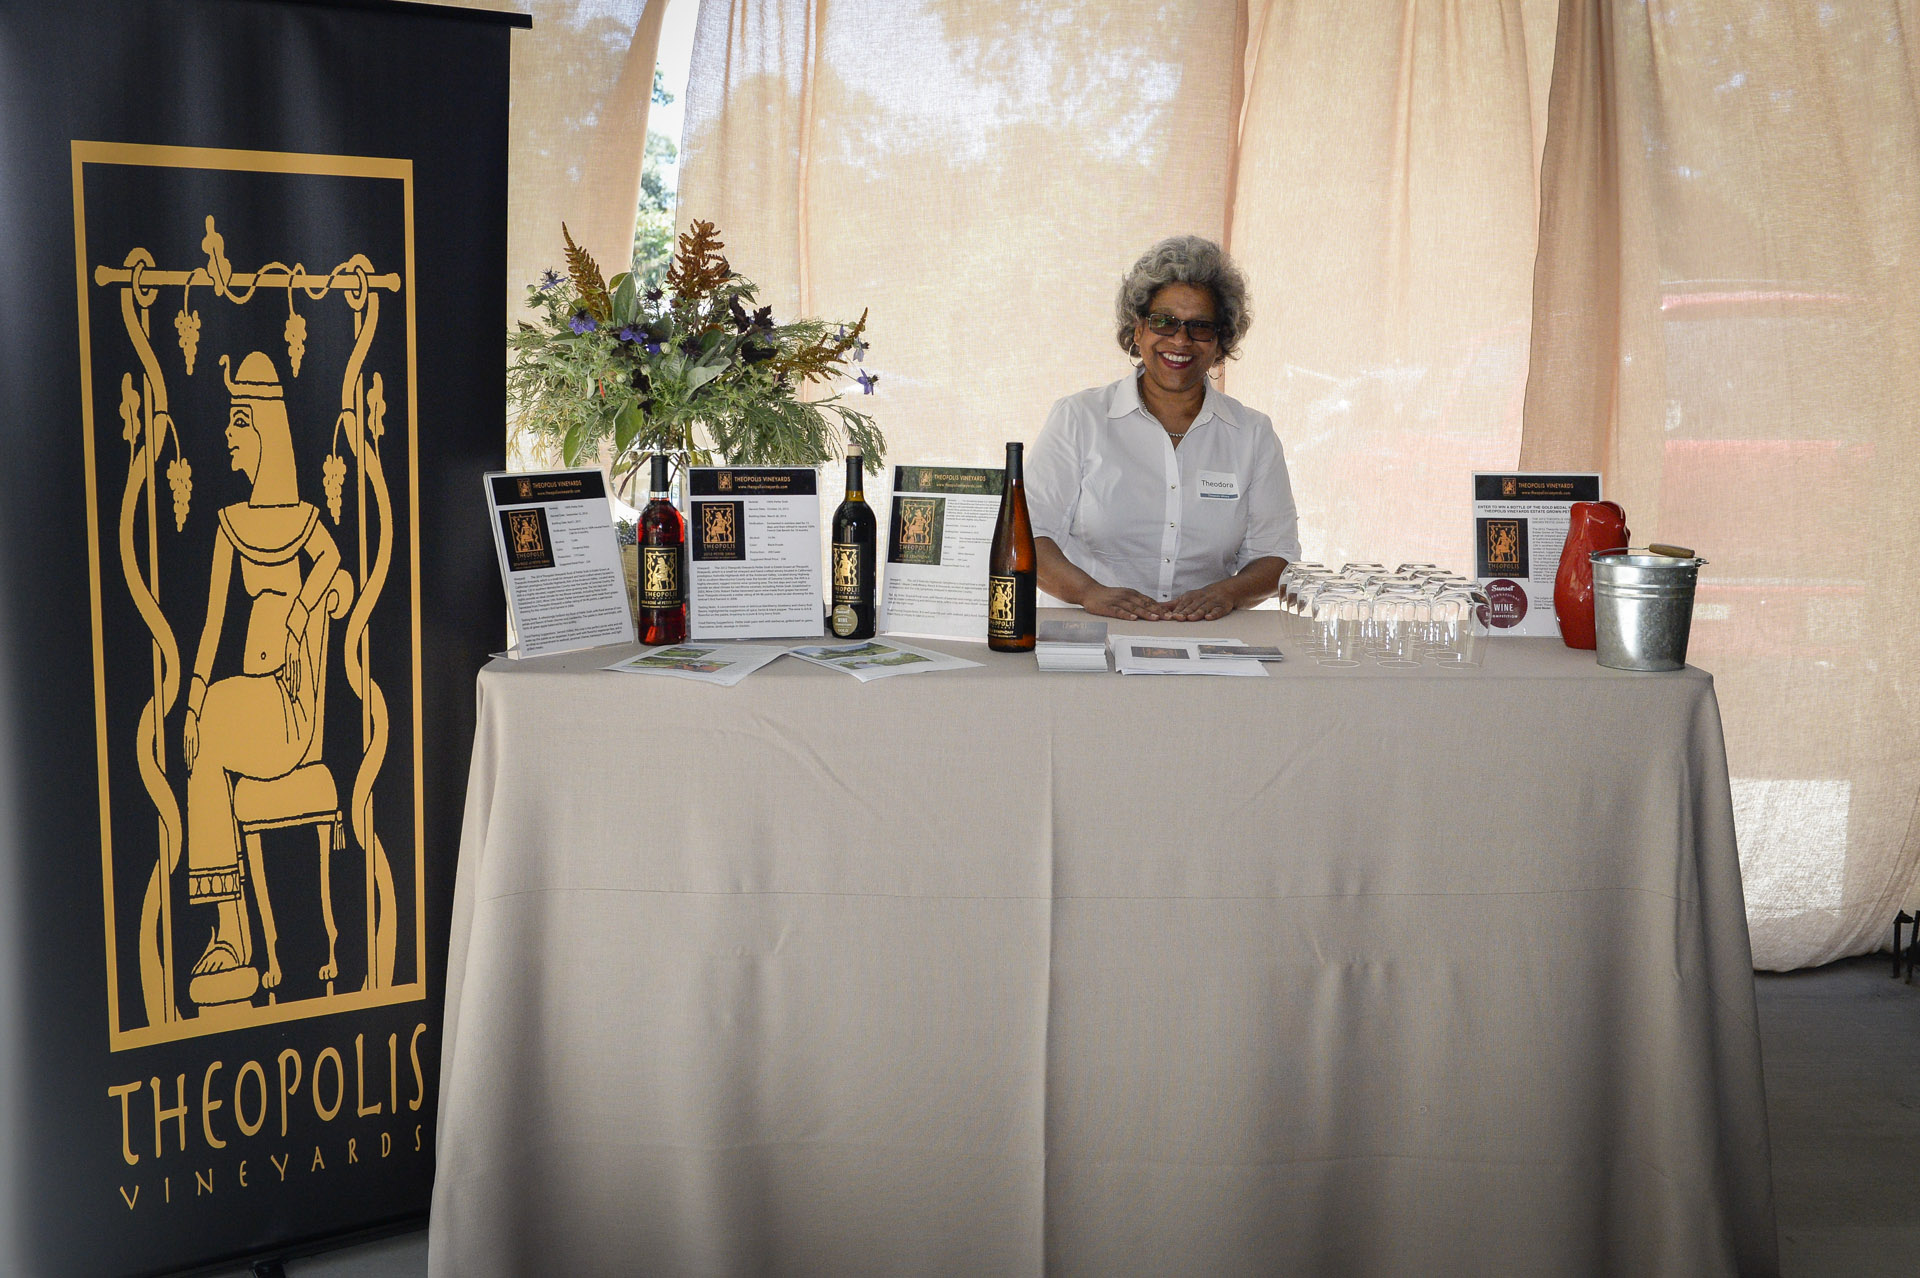 Theopolis winery pouring at The Highlands Estate